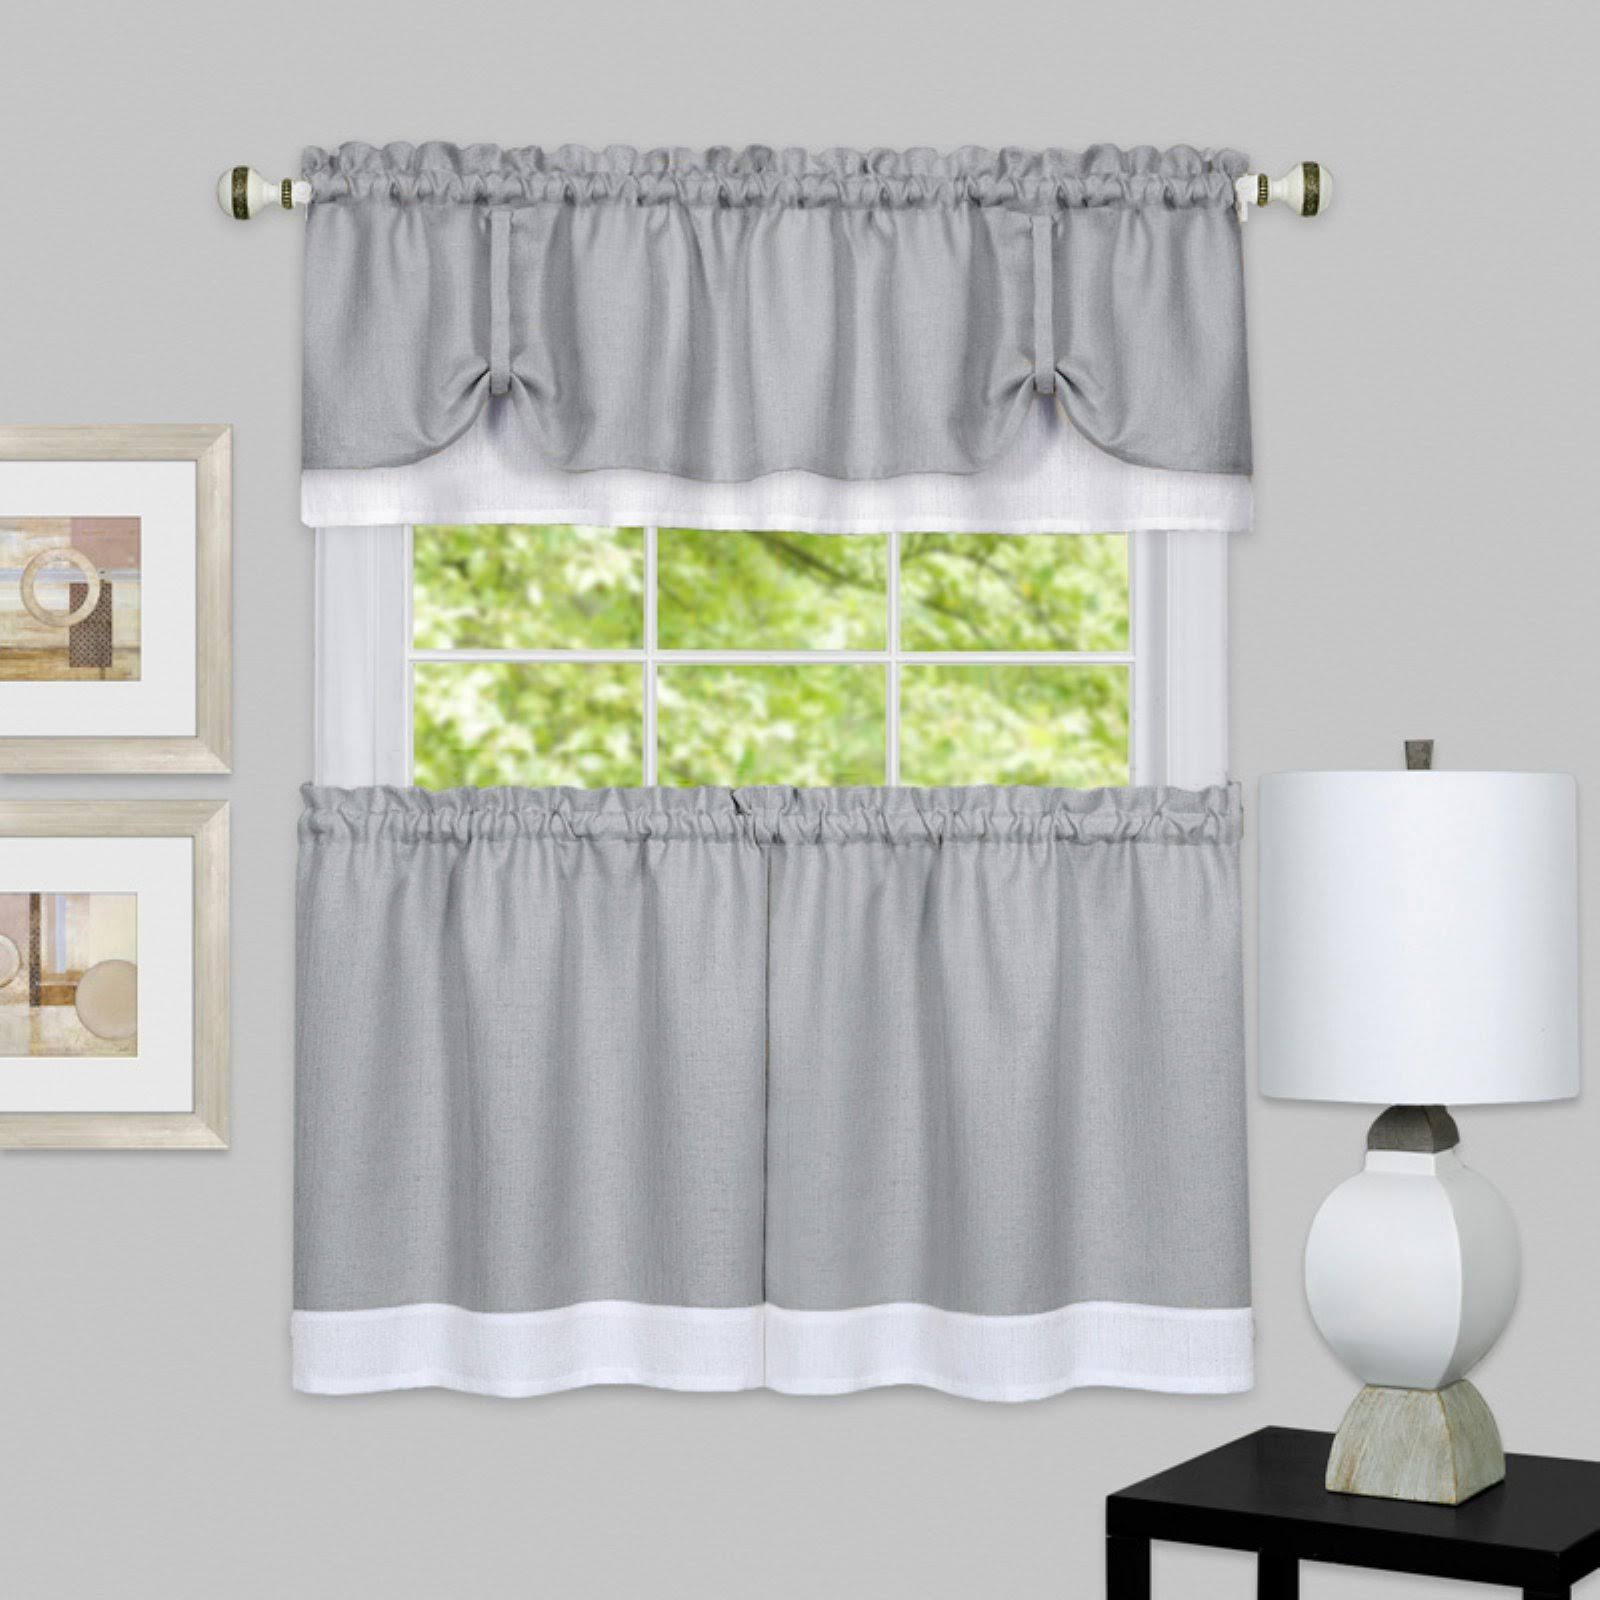 Achim 3-Piece Darcy Tier & Valance Kitchen Window Curtain Set, Grey, 58x36